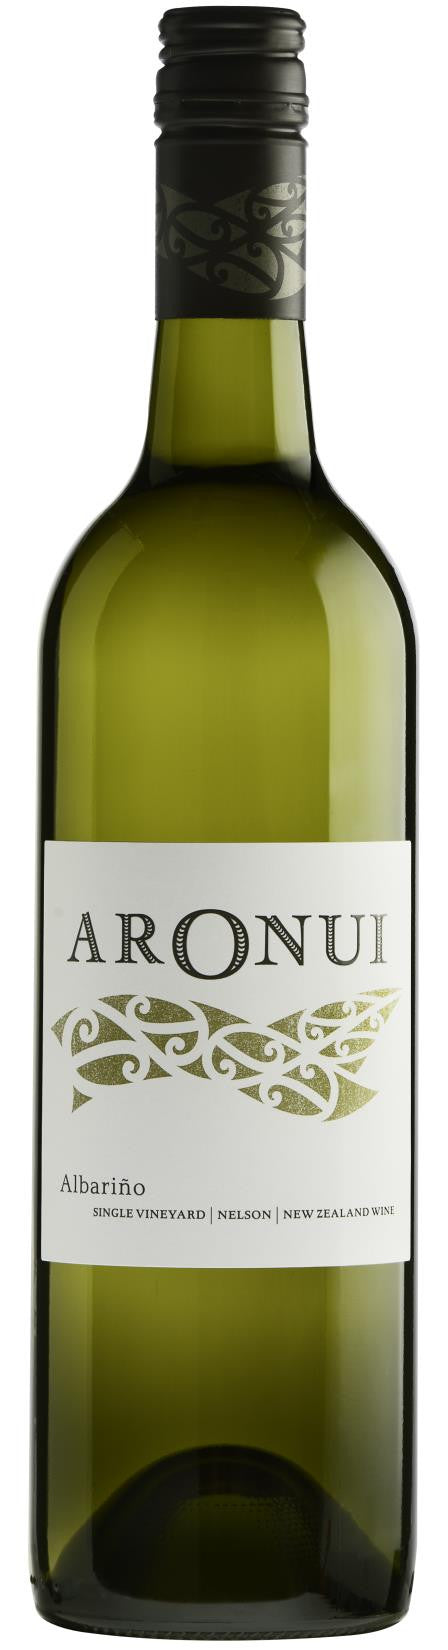 Image result for Aronui Single Vineyard Nelson Albariño 2016